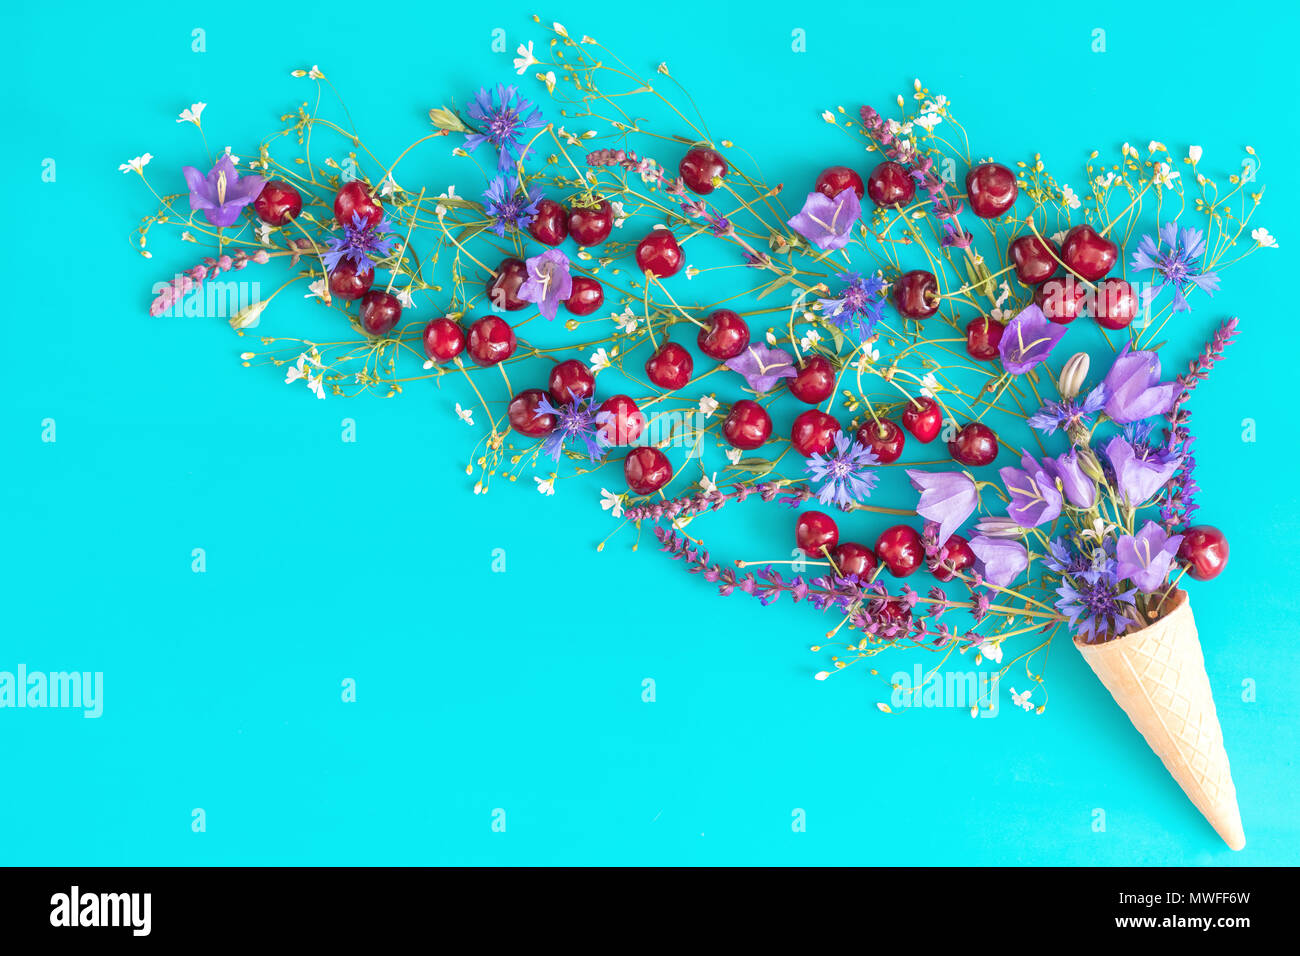 Waffle cone with red cherries, cornflower, blue bells and white flowers blossom bouquets on blue surface. Flat lay, top view sweet food floral backgro - Stock Image